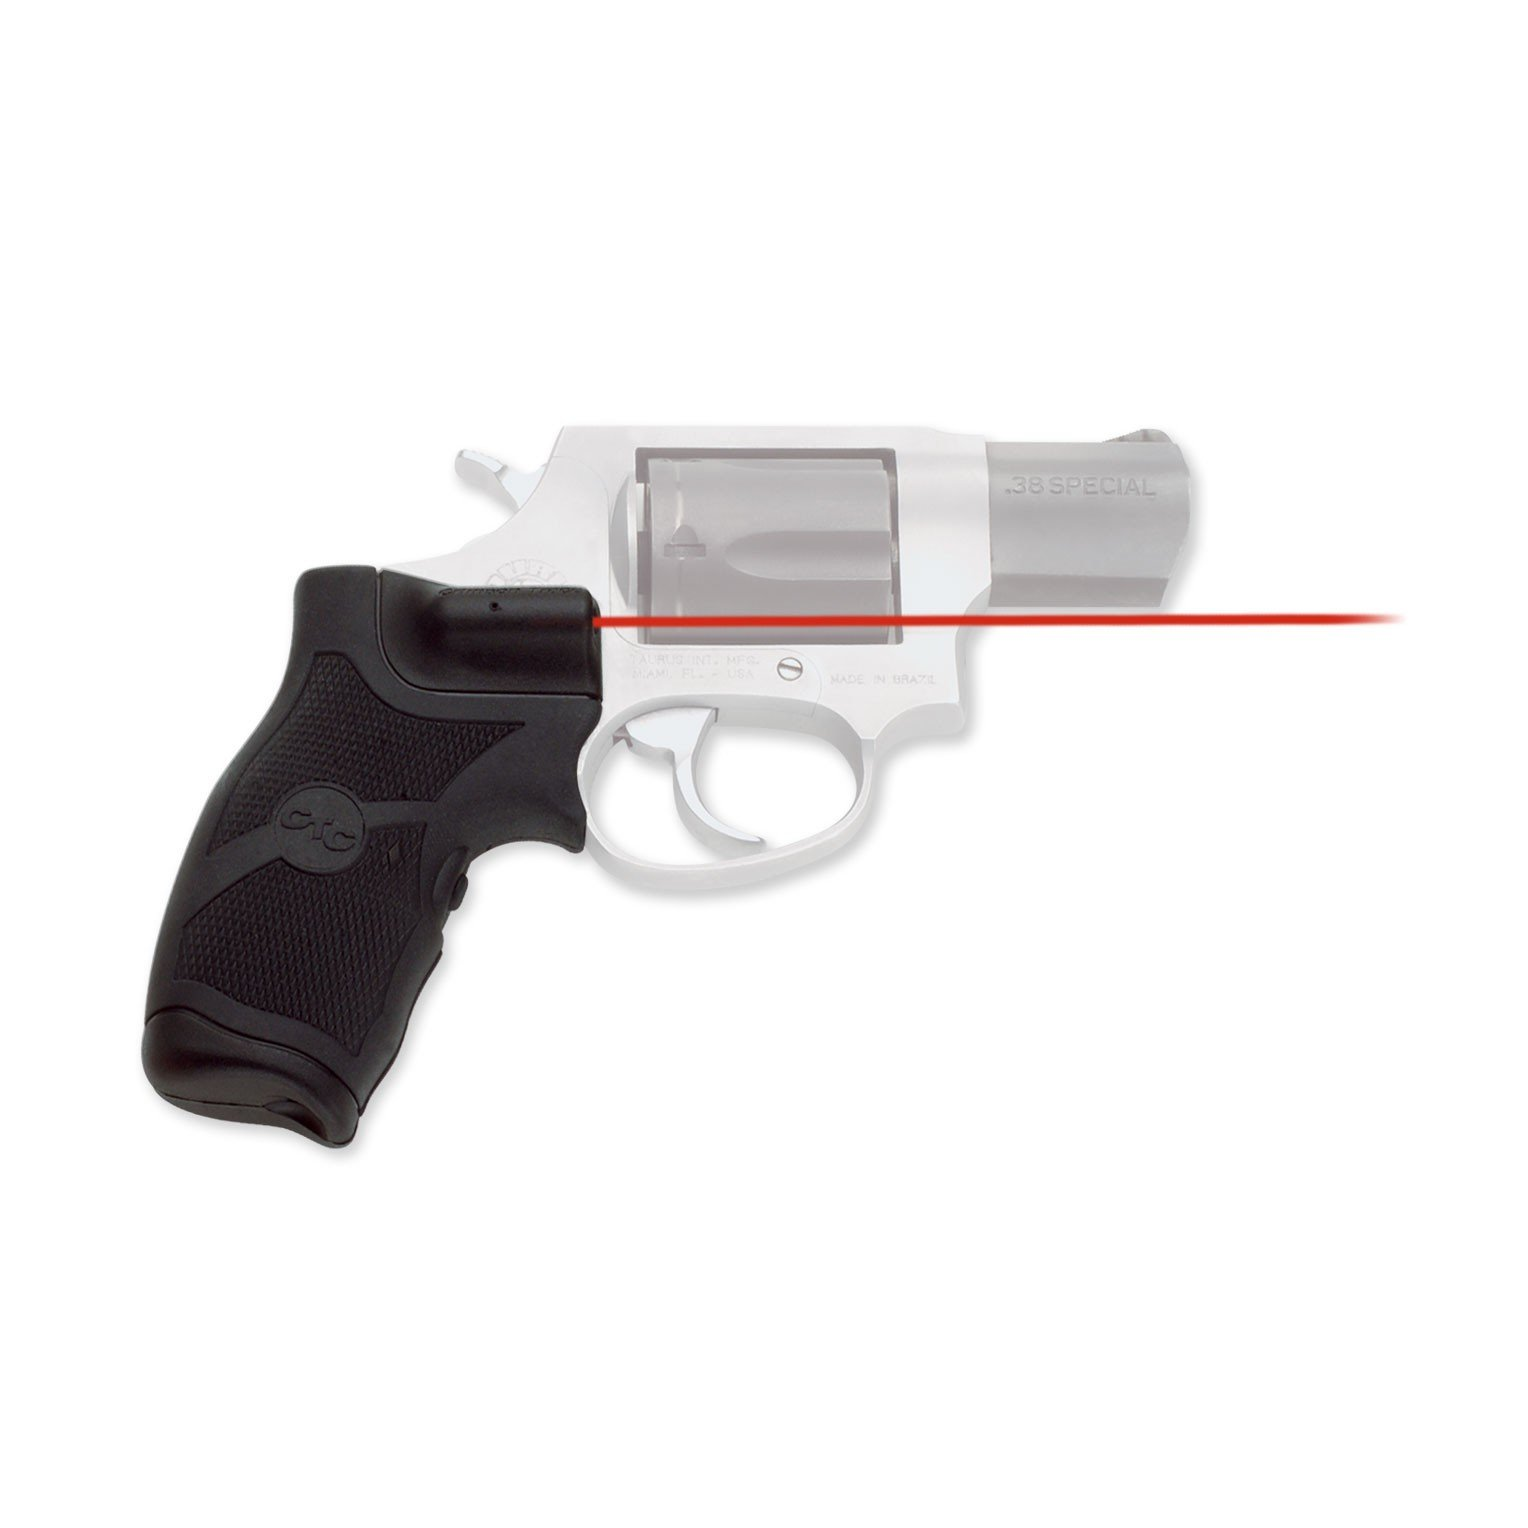 CMR Lasergrips for Taurus Revolvers (Rubber Overmold)